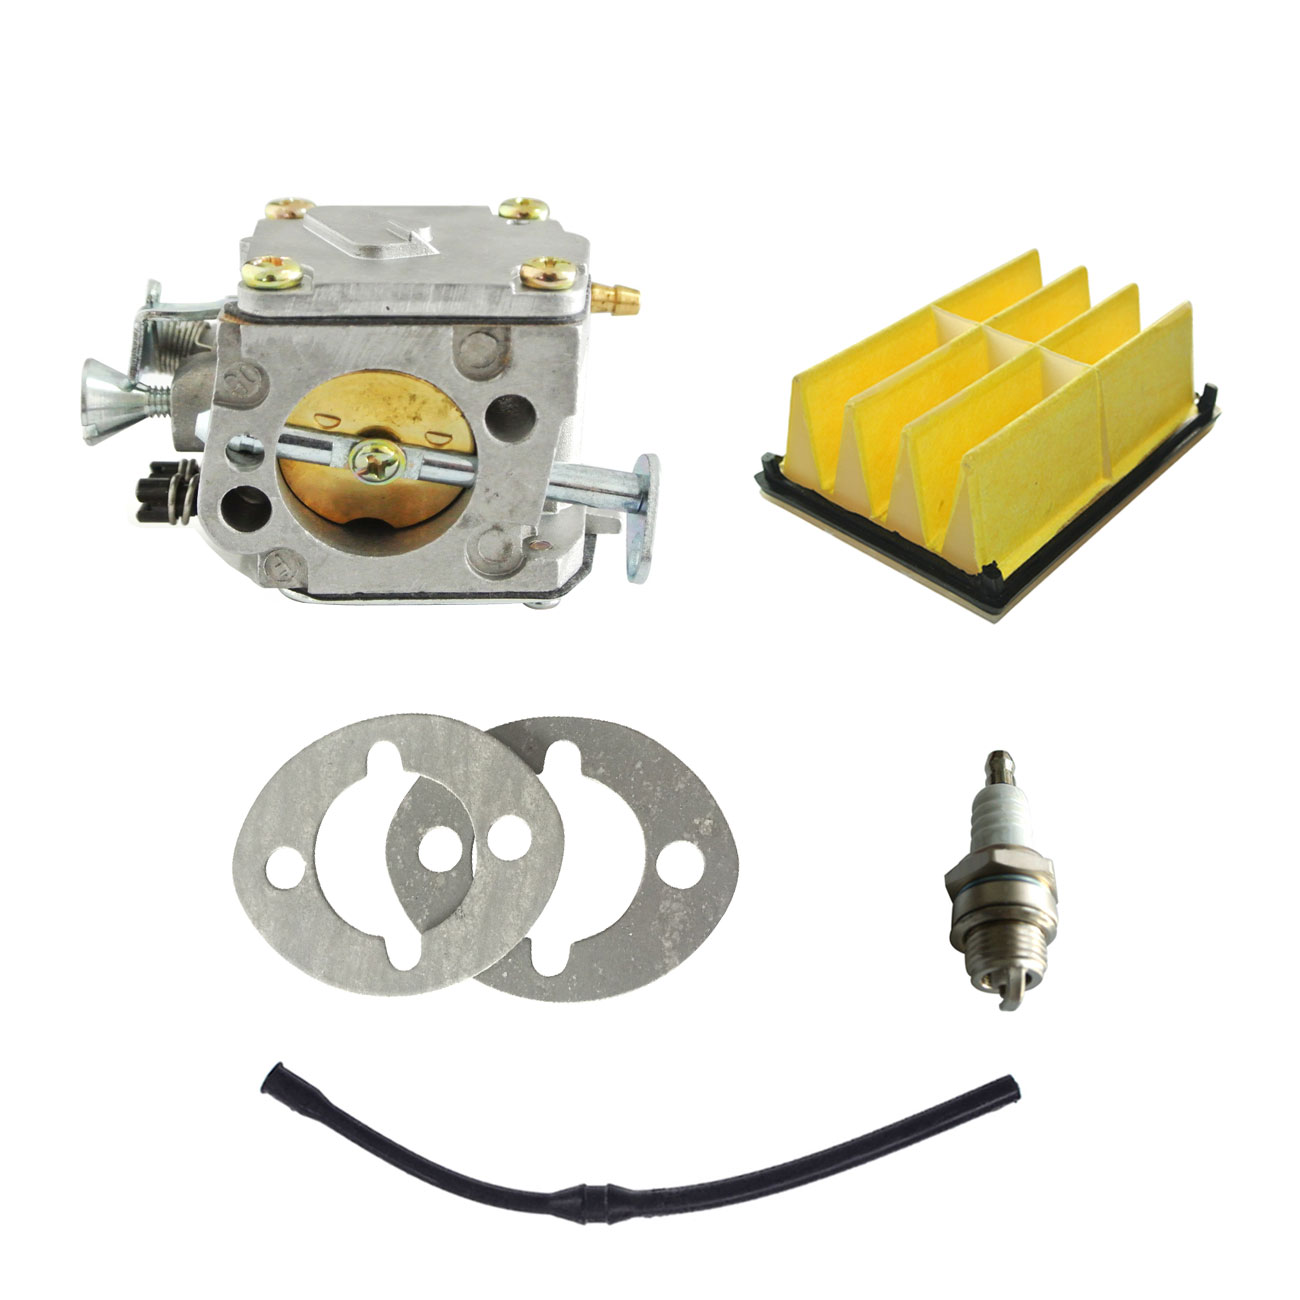 Carburetor & Fuel Line & Air Filter & Spark Plug To Fit HUSQVARNA 61 268 266 цена